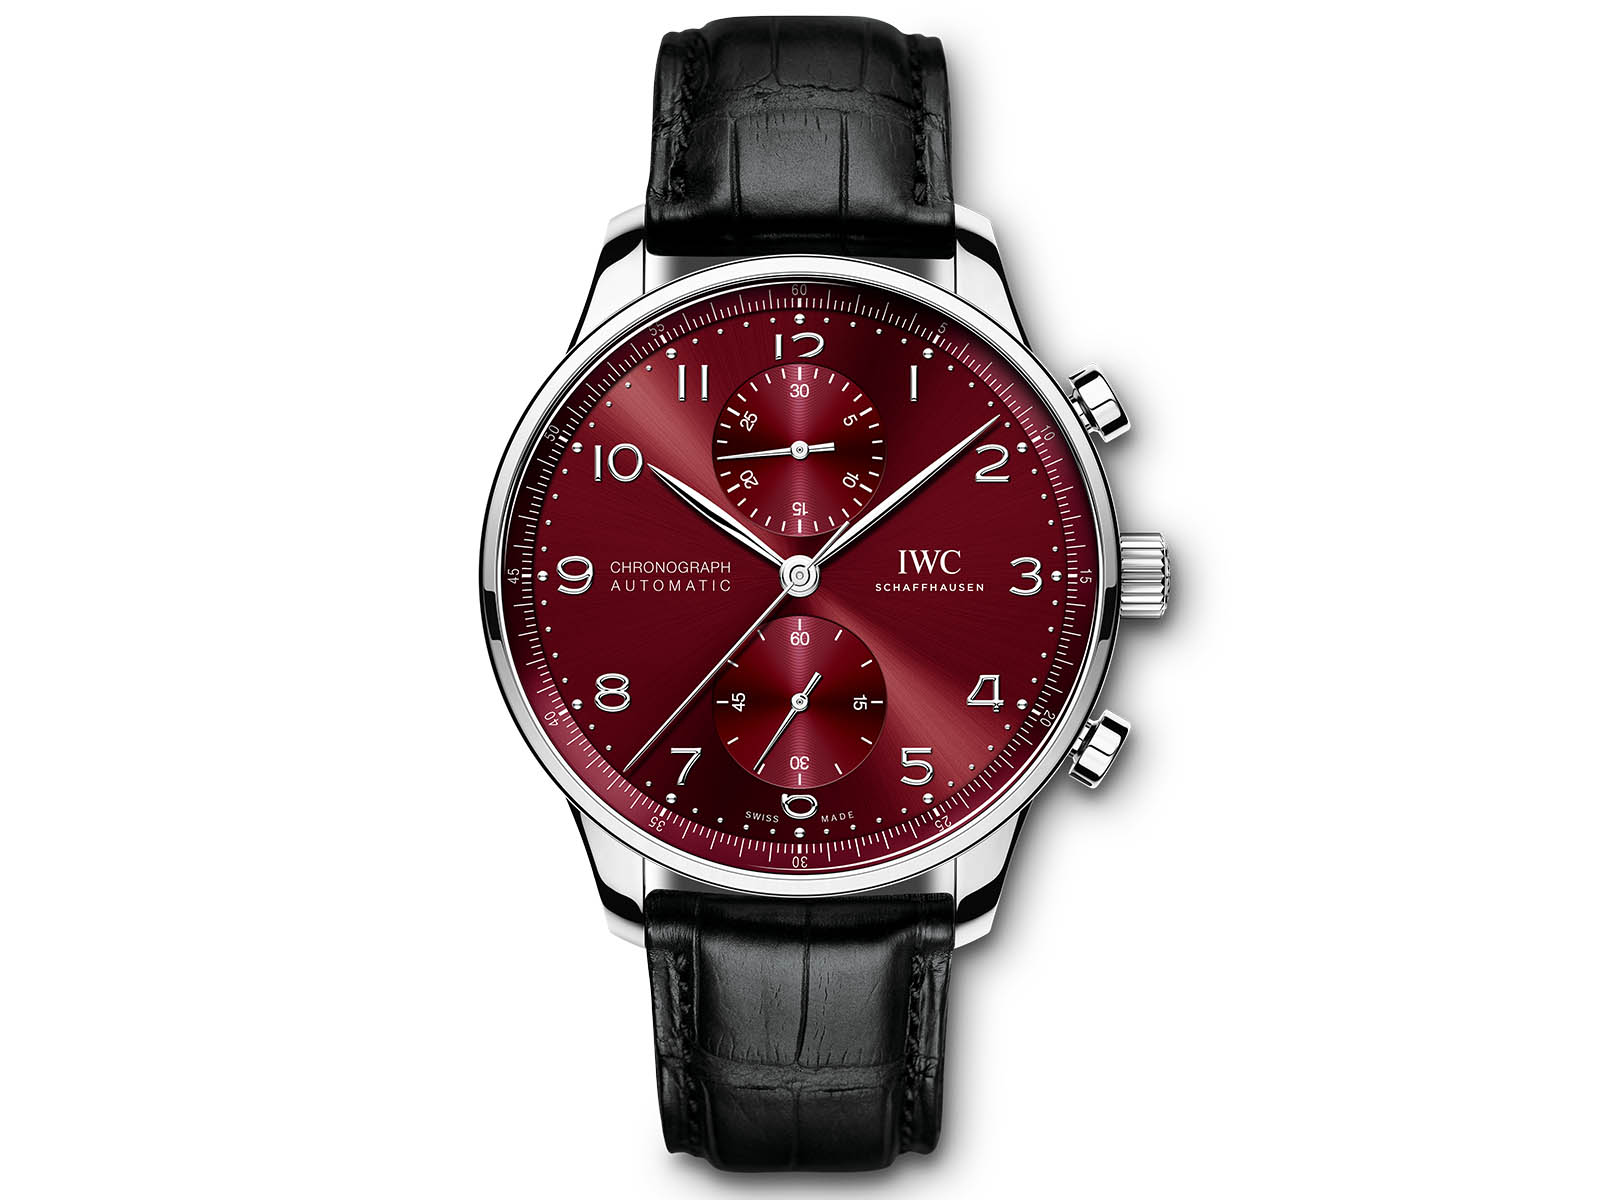 iw371616-iwc-schaffhausen-portugieser-chronograph-watches-wonders-2020-1.jpg